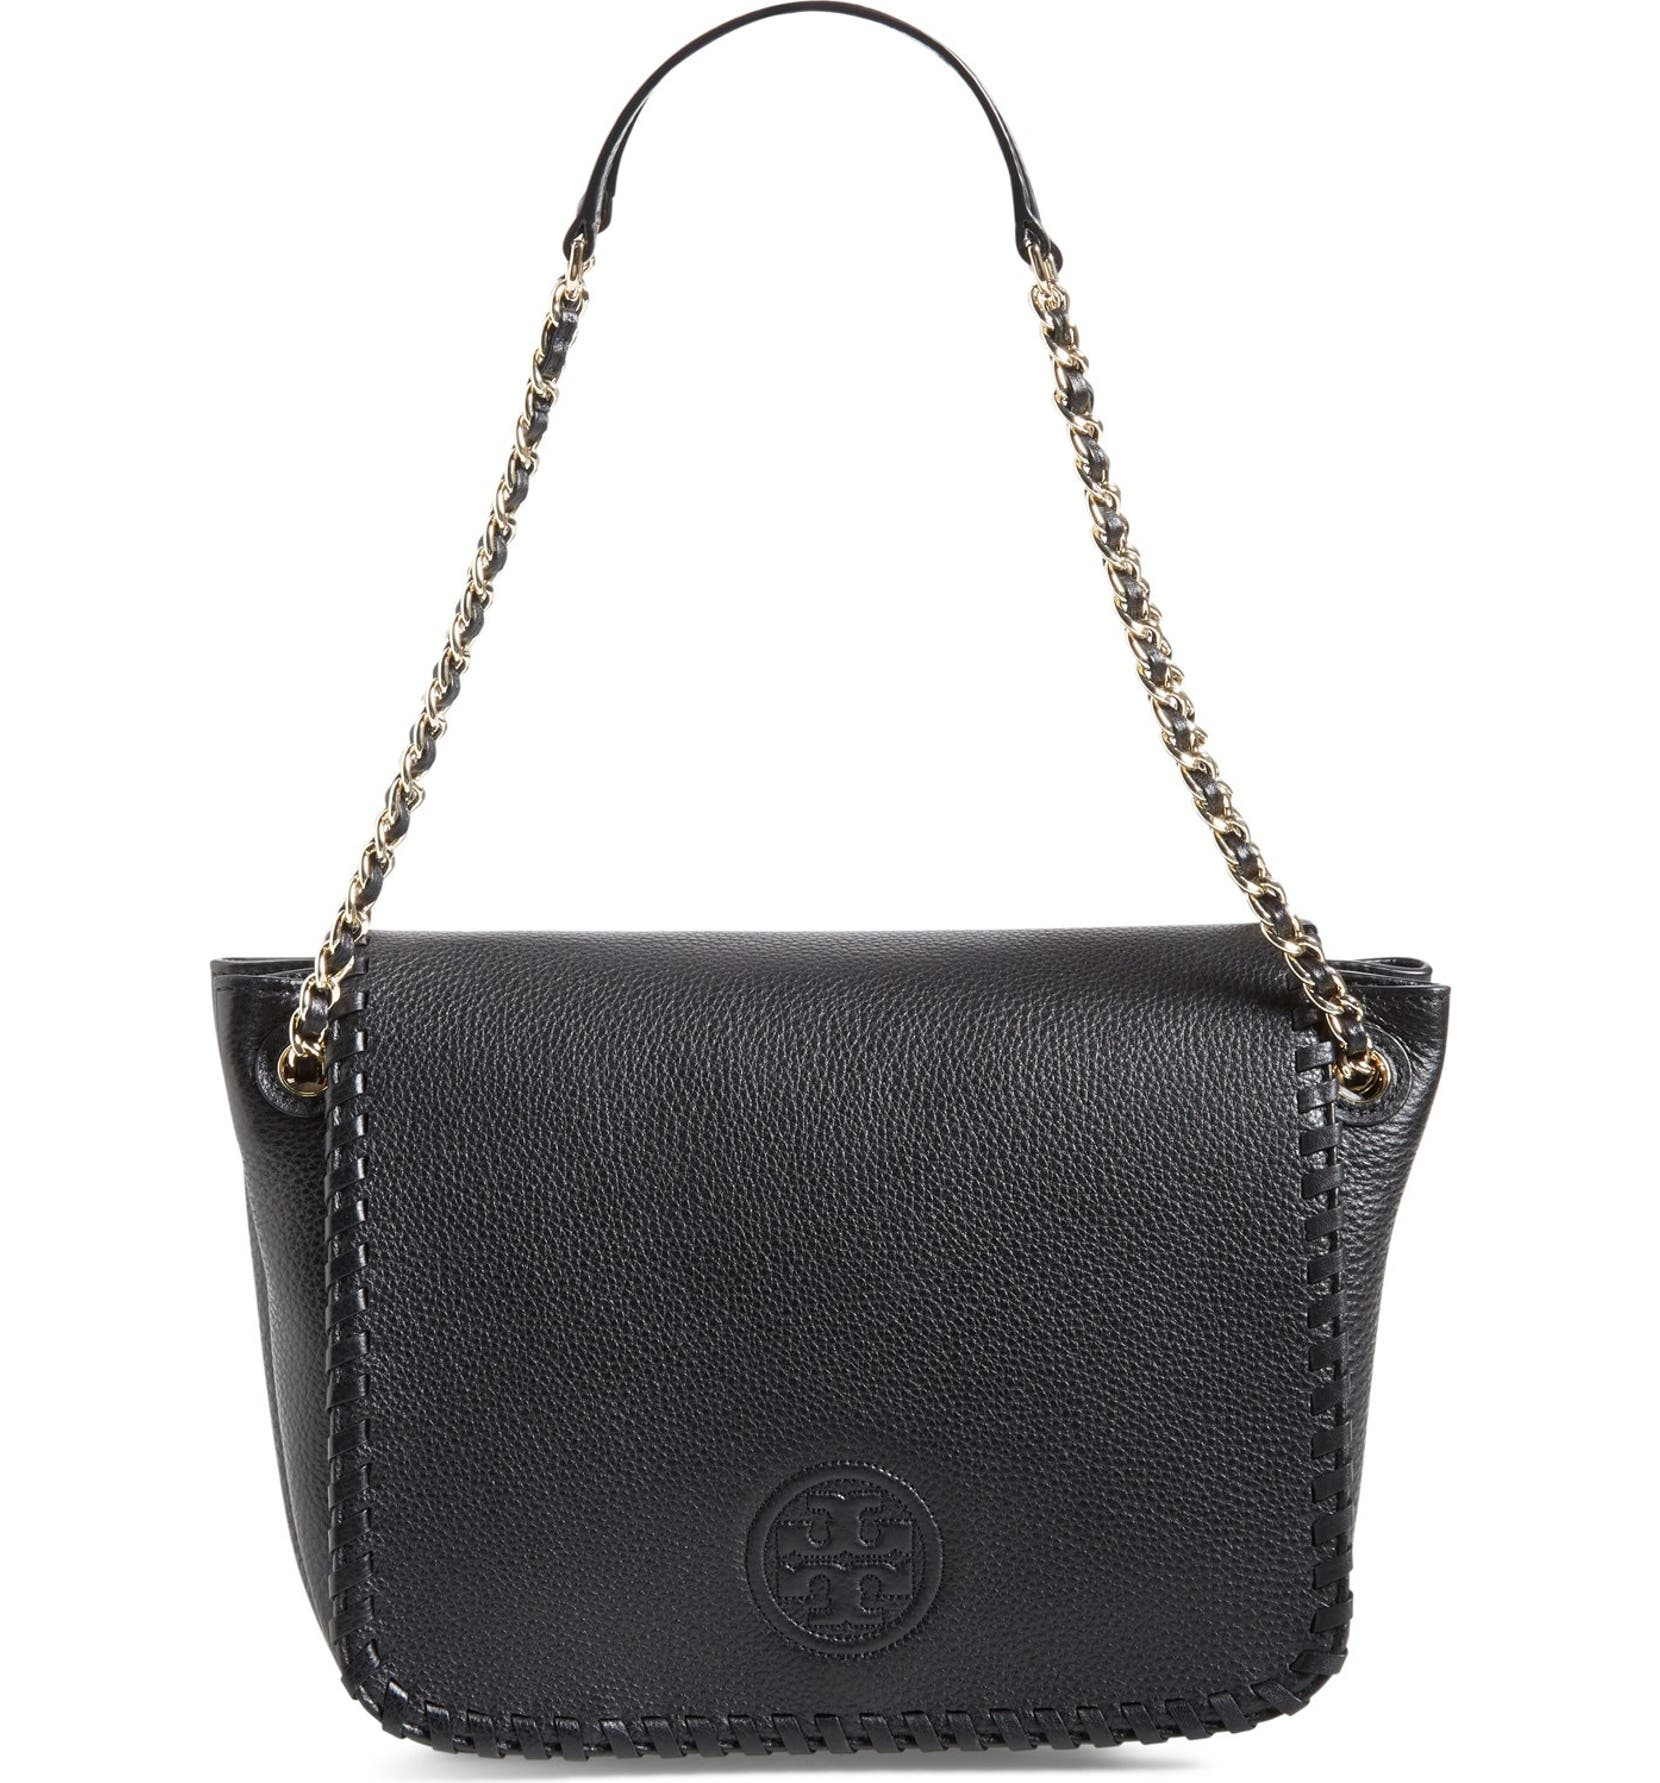 c8ef51cac83 Tory Burch  Small Marion  Leather Flap Shoulder Bag